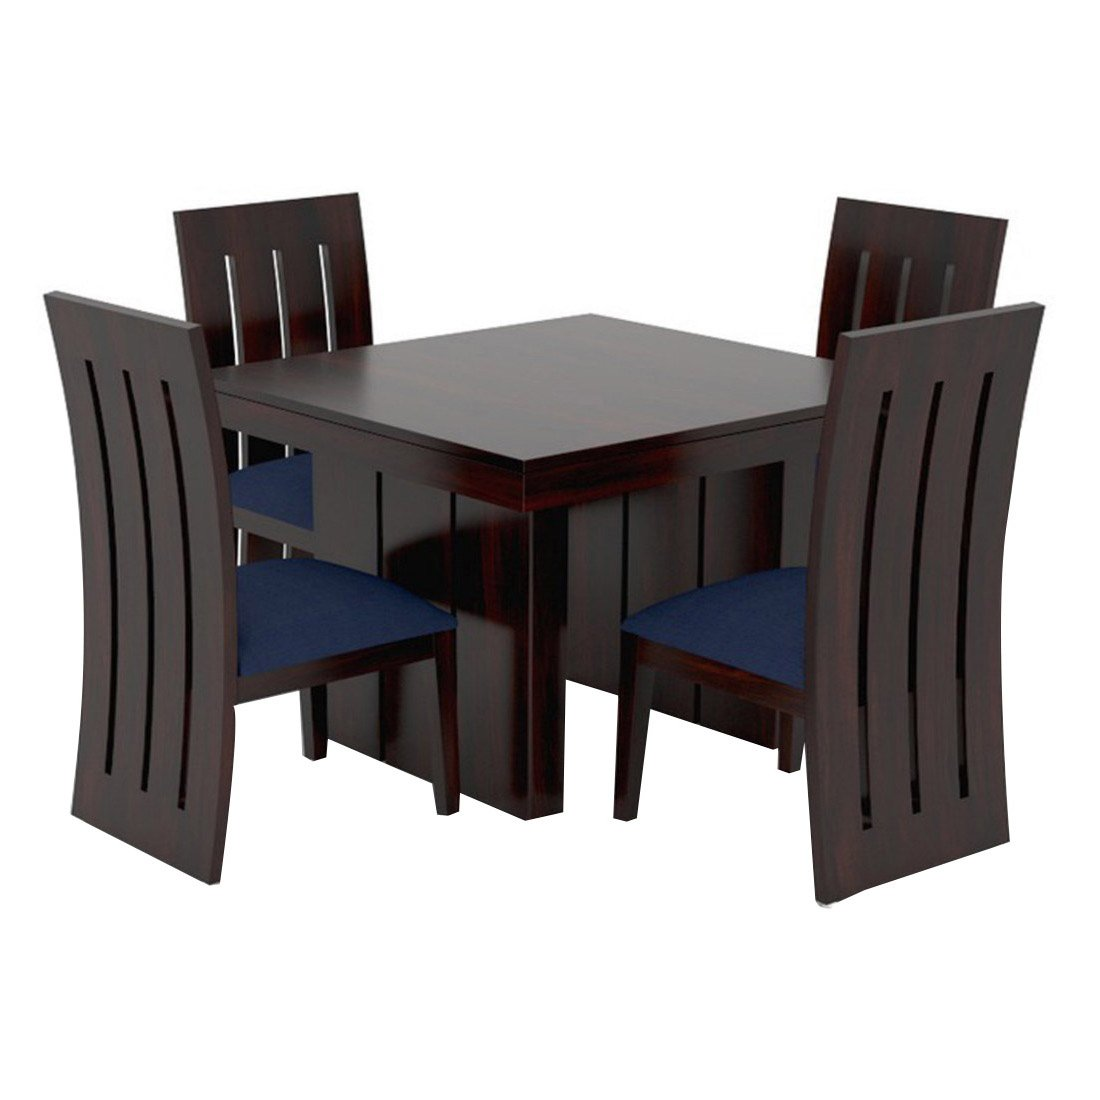 Funterior enormous teak wood 4 seater fabric dining table navy blue amazon in home kitchen